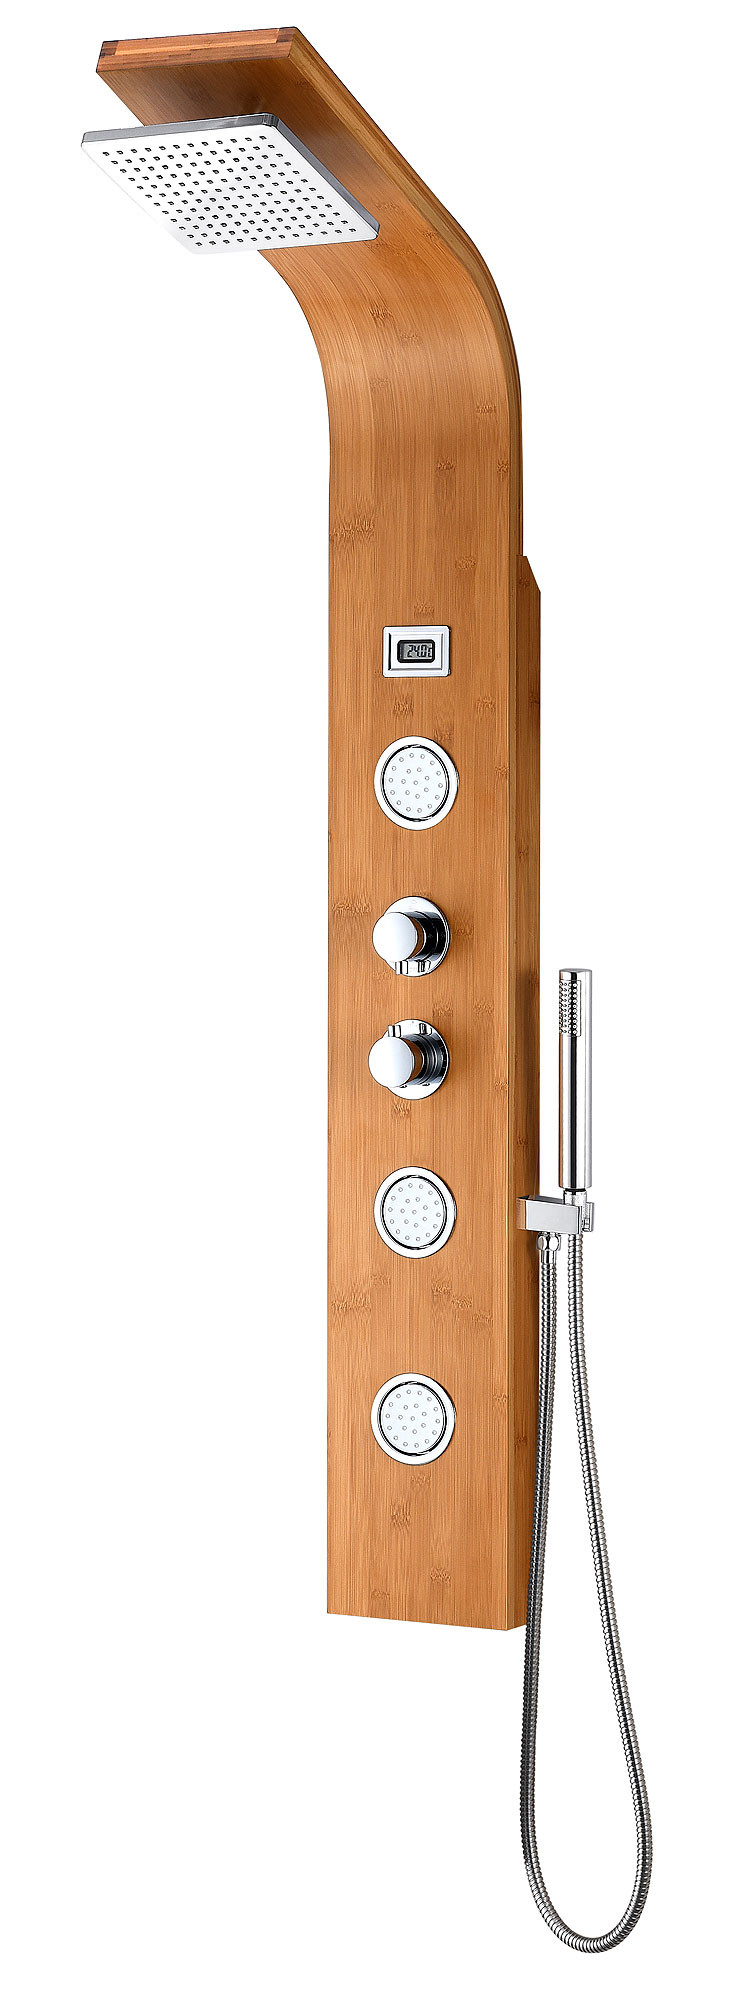 ANZZI SP-AZ059 Crane Wall Mount Shower Panel System In Natural Bamboo